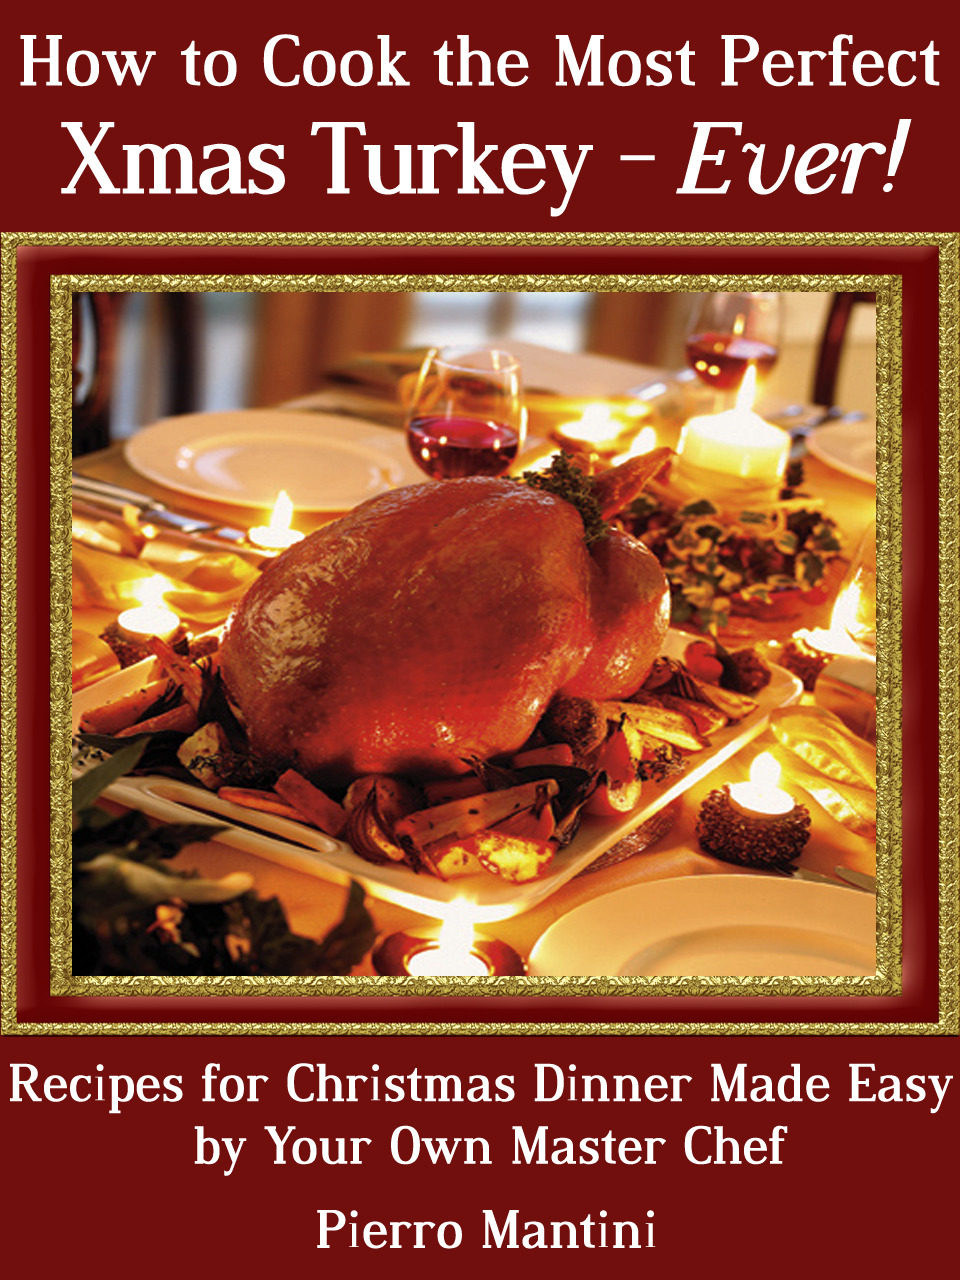 How to Cook the Most Perfect Xmas Turkey: Ever! Recipes for Christmas Dinner Made Easy by Your Own Master Chef